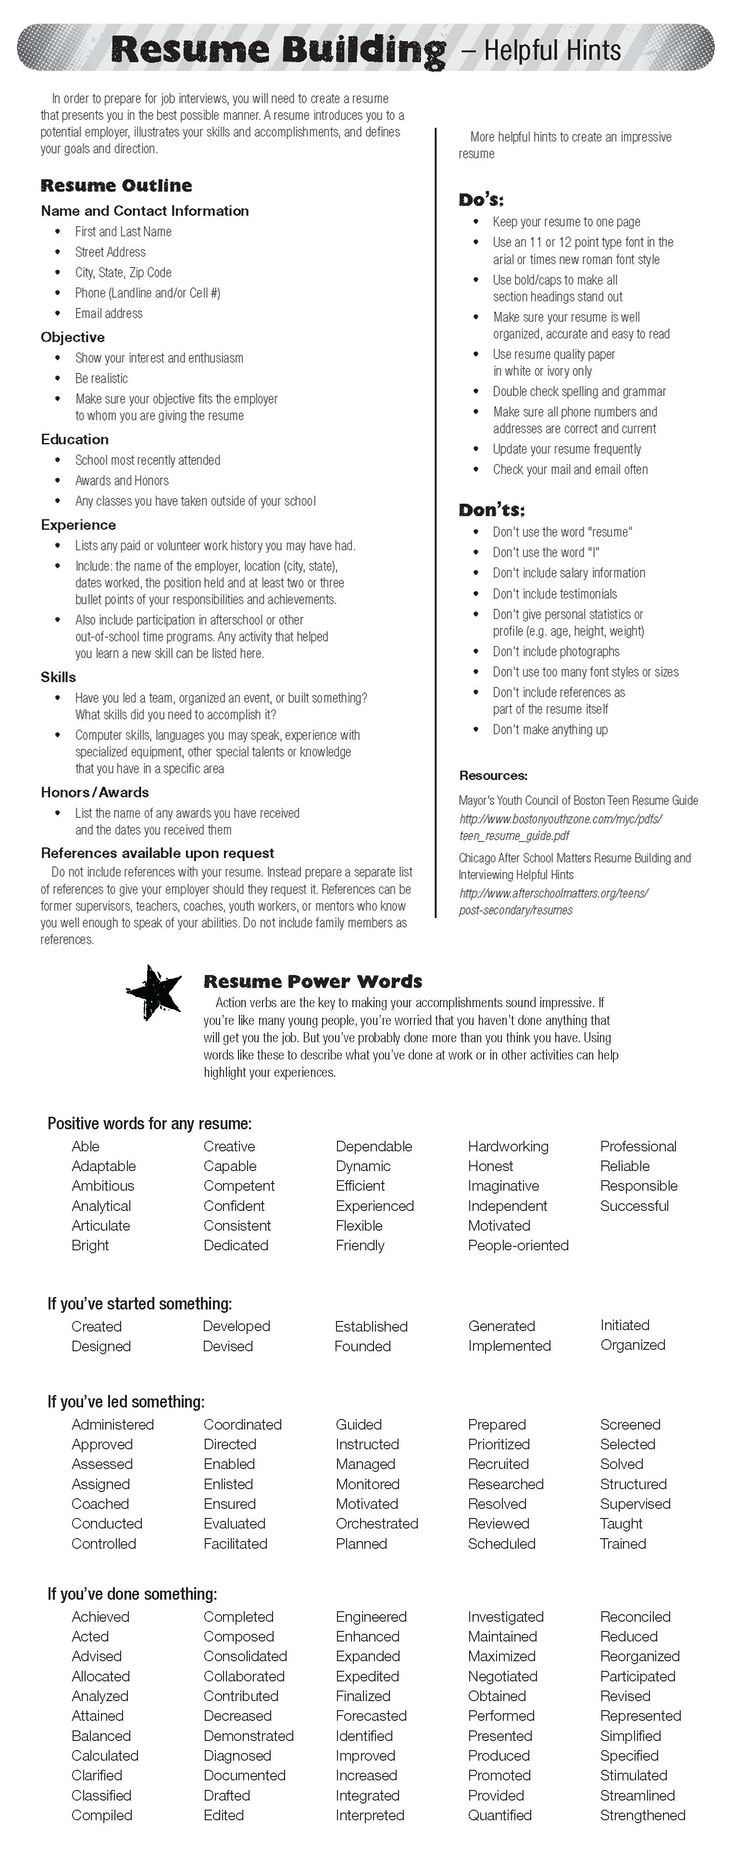 Opposenewapstandardsus  Pleasing  Ideas About Resume On Pinterest  Cv Format Resume Cv And  With Entrancing  Ideas About Resume On Pinterest  Cv Format Resume Cv And Resume Templates With Amusing Sample Resume For Cna Also High School Resume Objective In Addition Double Major On Resume And Sample Resume For College Students As Well As Analytical Skills Resume Additionally Definition Of A Resume From Pinterestcom With Opposenewapstandardsus  Entrancing  Ideas About Resume On Pinterest  Cv Format Resume Cv And  With Amusing  Ideas About Resume On Pinterest  Cv Format Resume Cv And Resume Templates And Pleasing Sample Resume For Cna Also High School Resume Objective In Addition Double Major On Resume From Pinterestcom